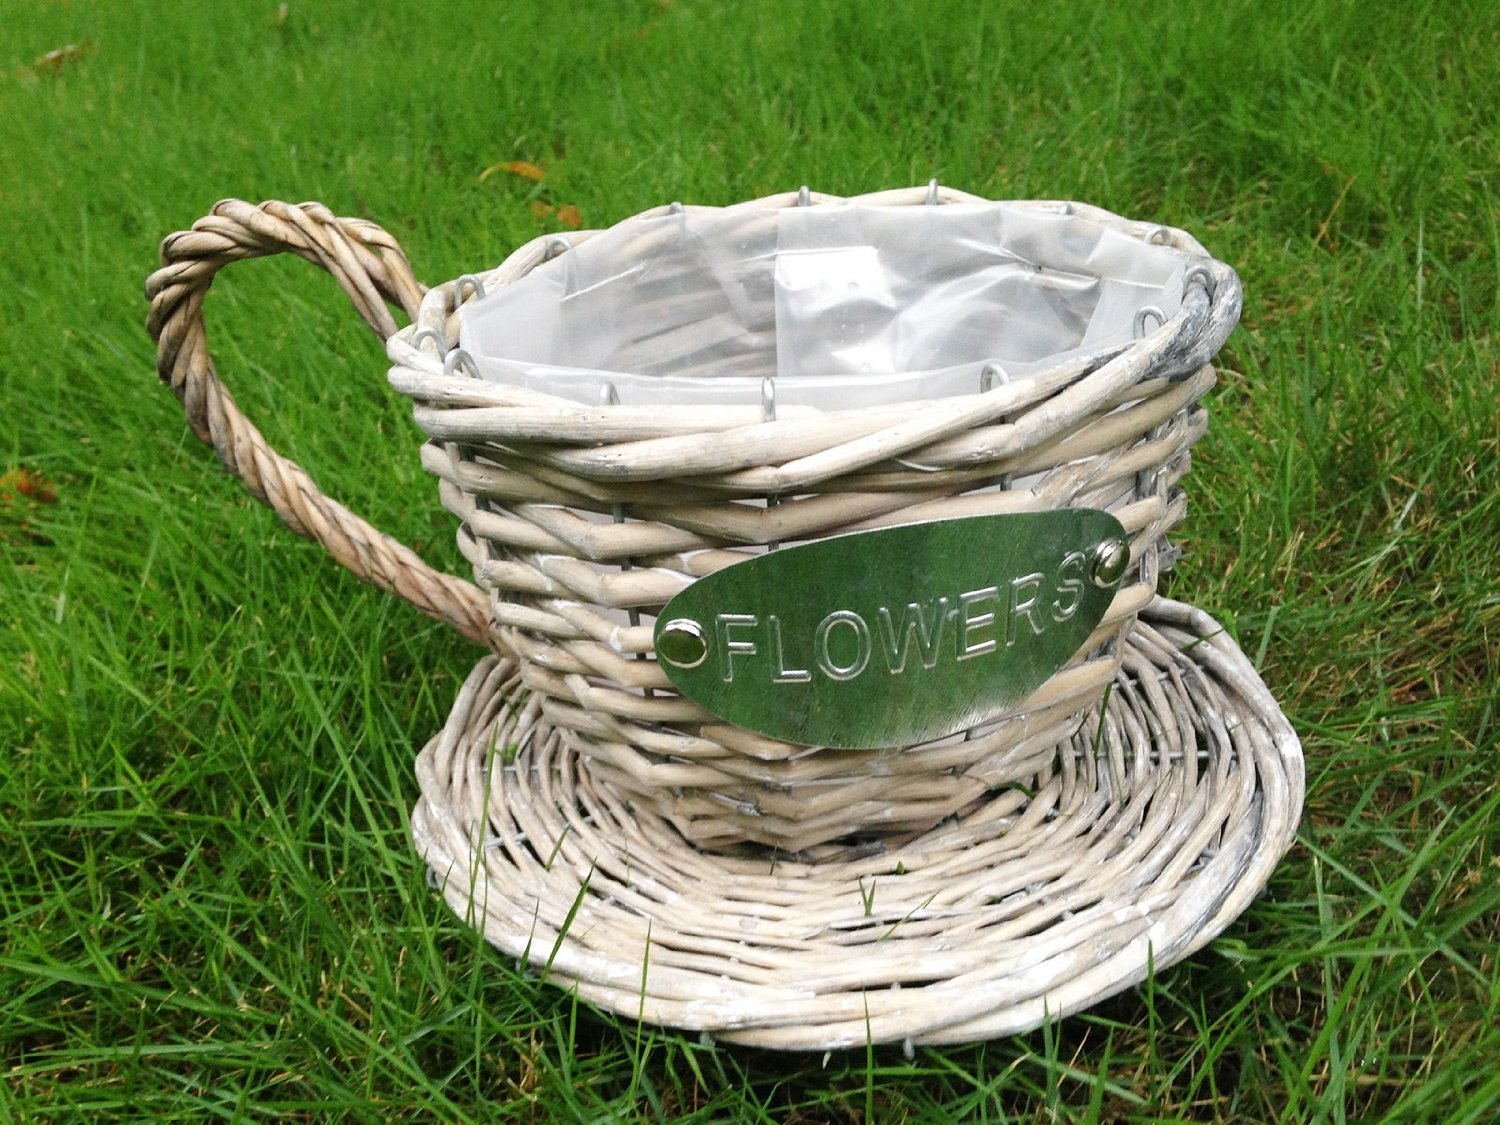 Handmade Wicker Coffee Cup Shaped Basket or Planter (Weathered Grey Color)